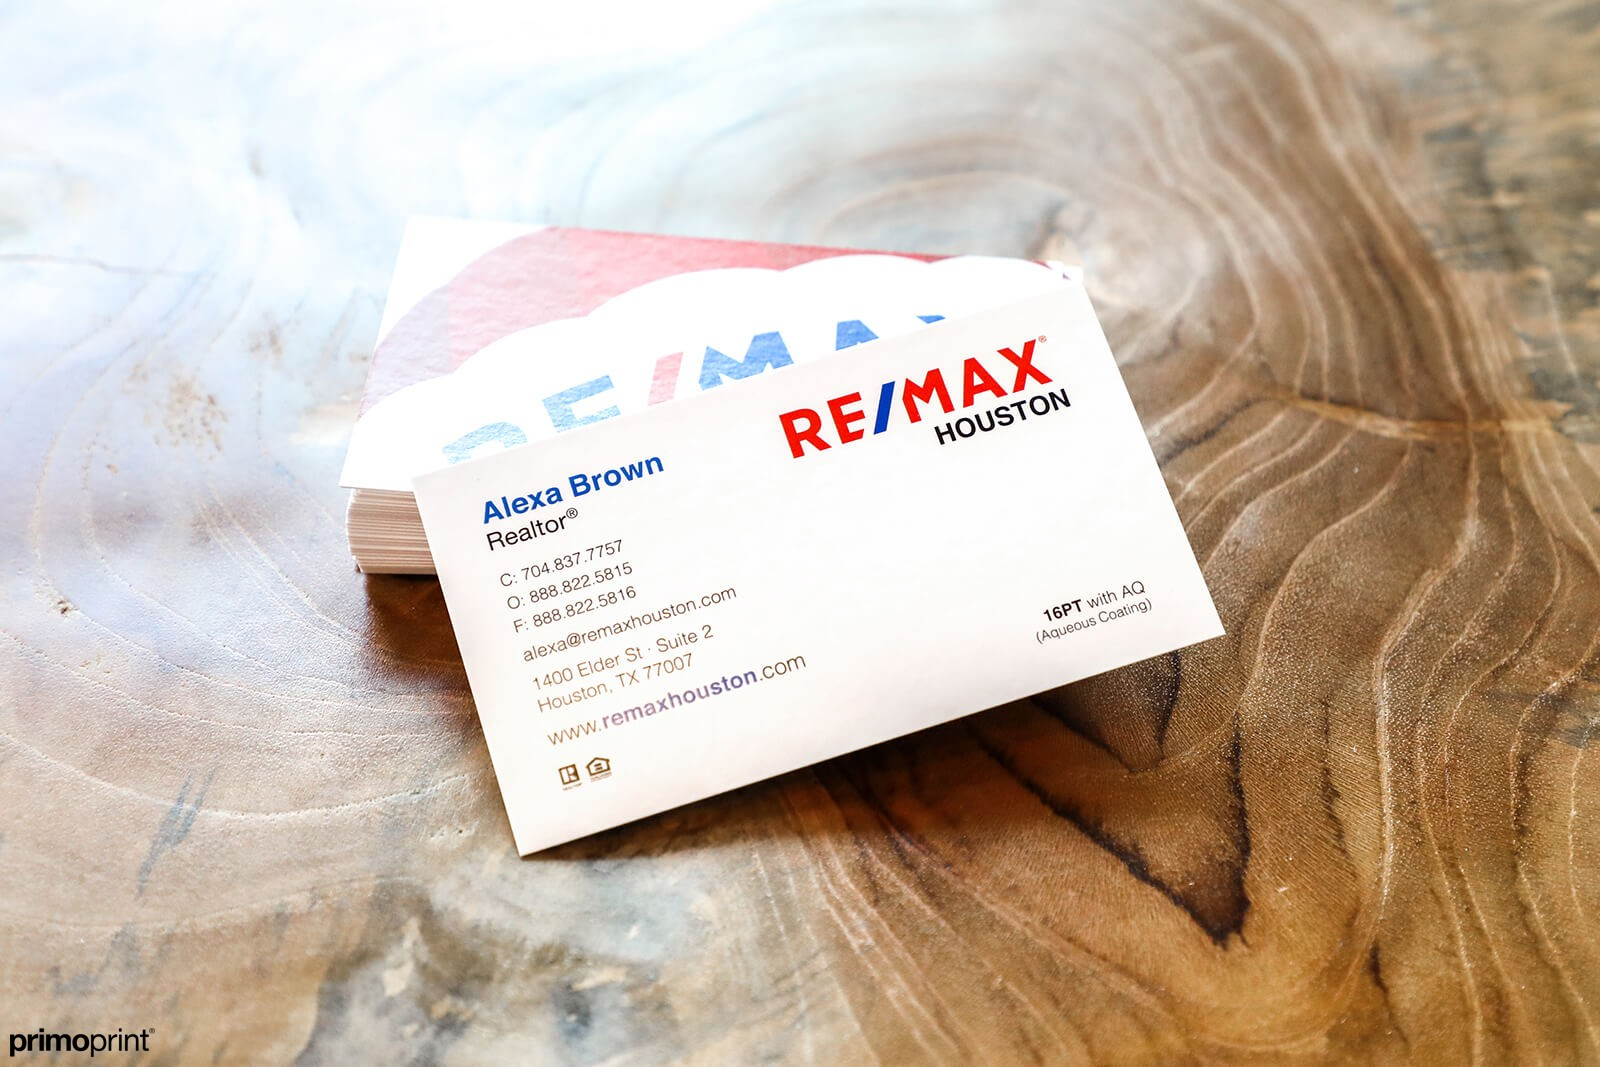 Make a statement with 16PT AQ business cards. The AQ coating helps protect the card from cracking and scuff marks. Designed and printed by Primoprint.